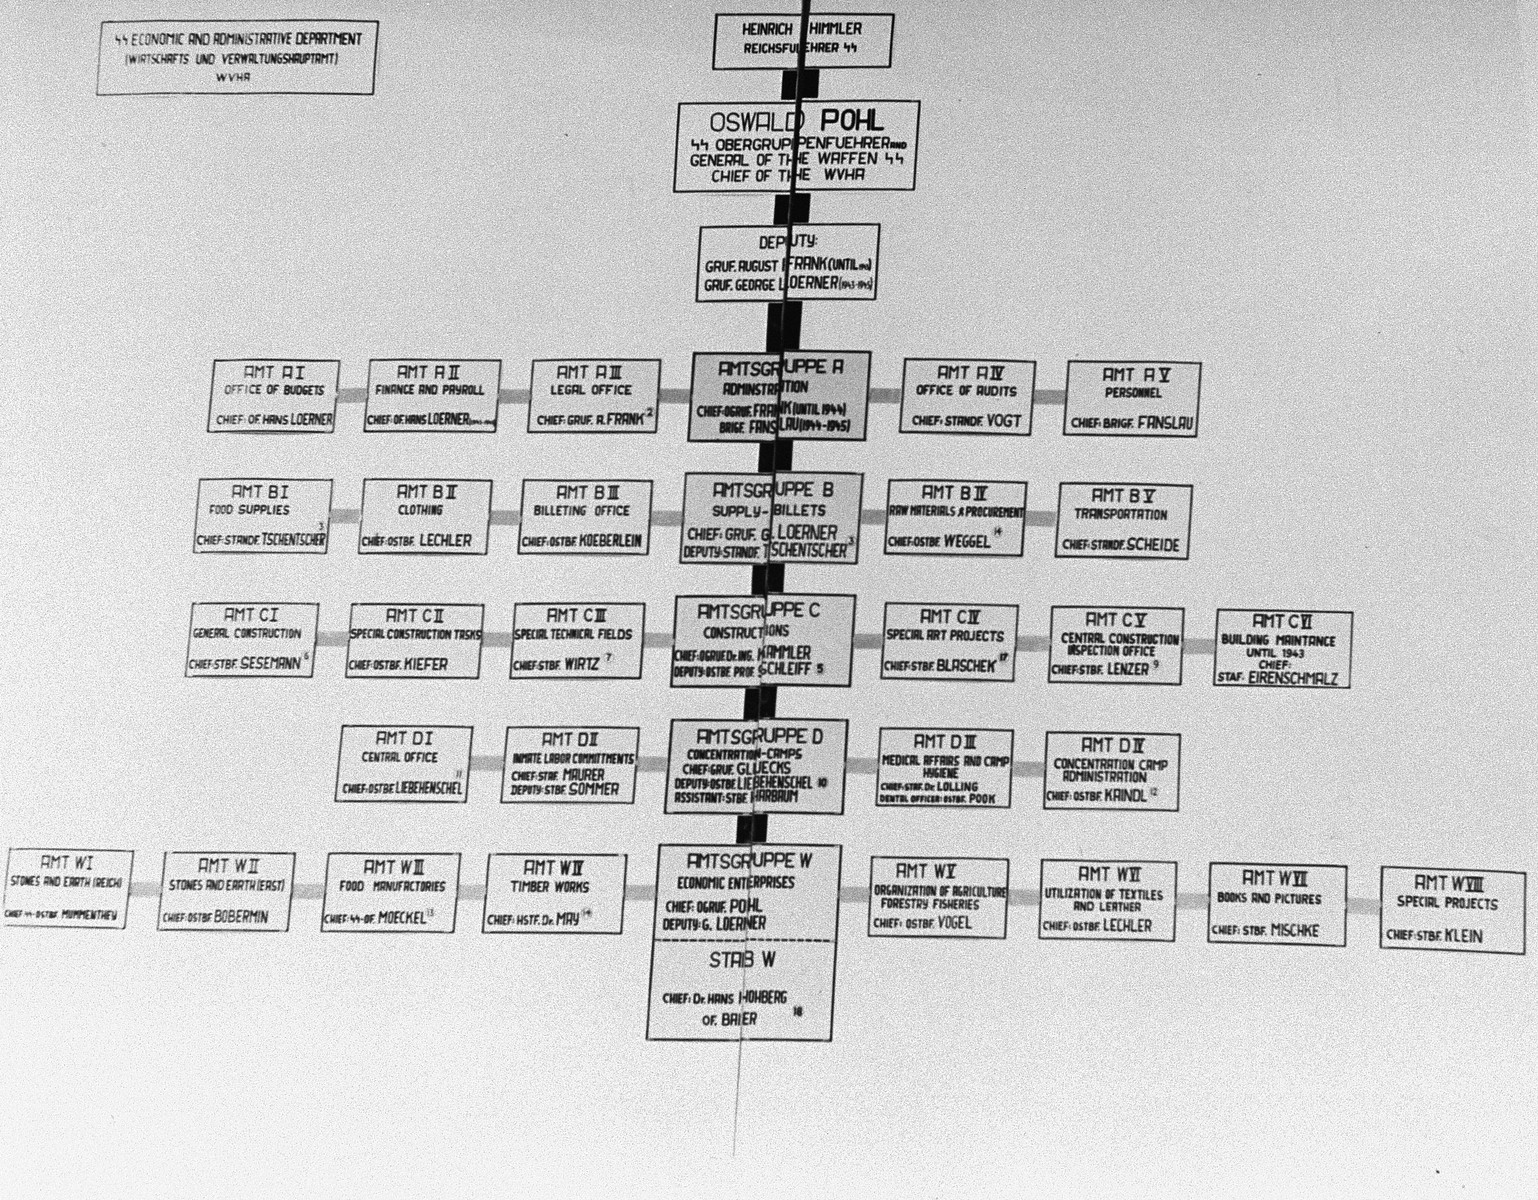 A chart designating the chain of command in the Economic and Administrative Main Office (the WVHA) presented as supporting material by the prosecution during the Pohl/WVHA trial.